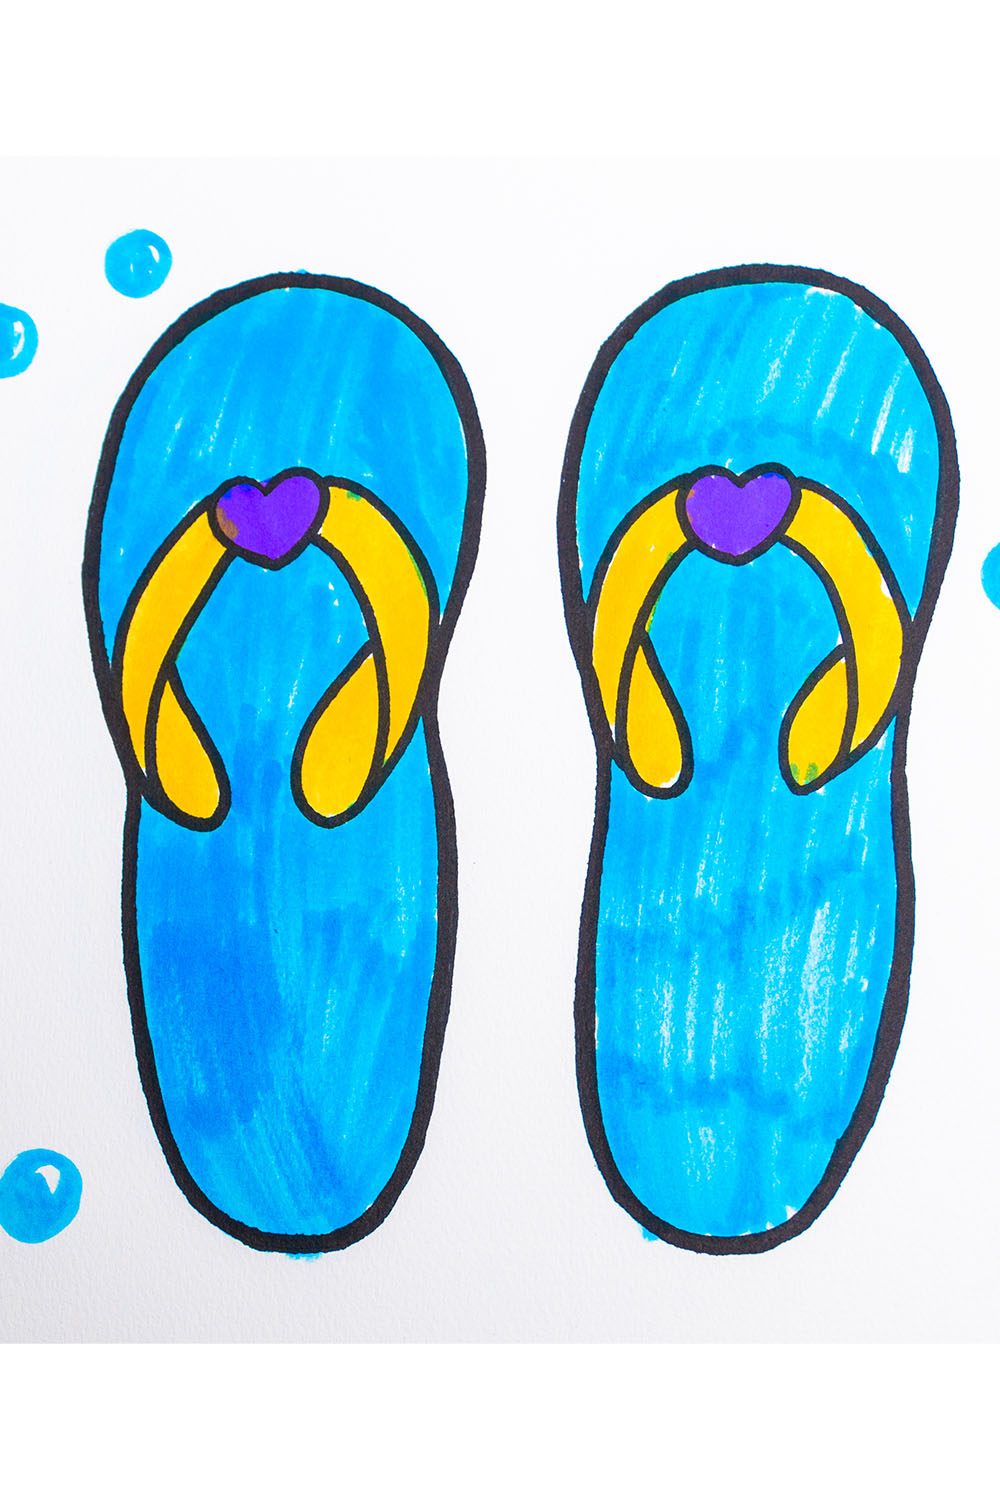 how to draw a sandals